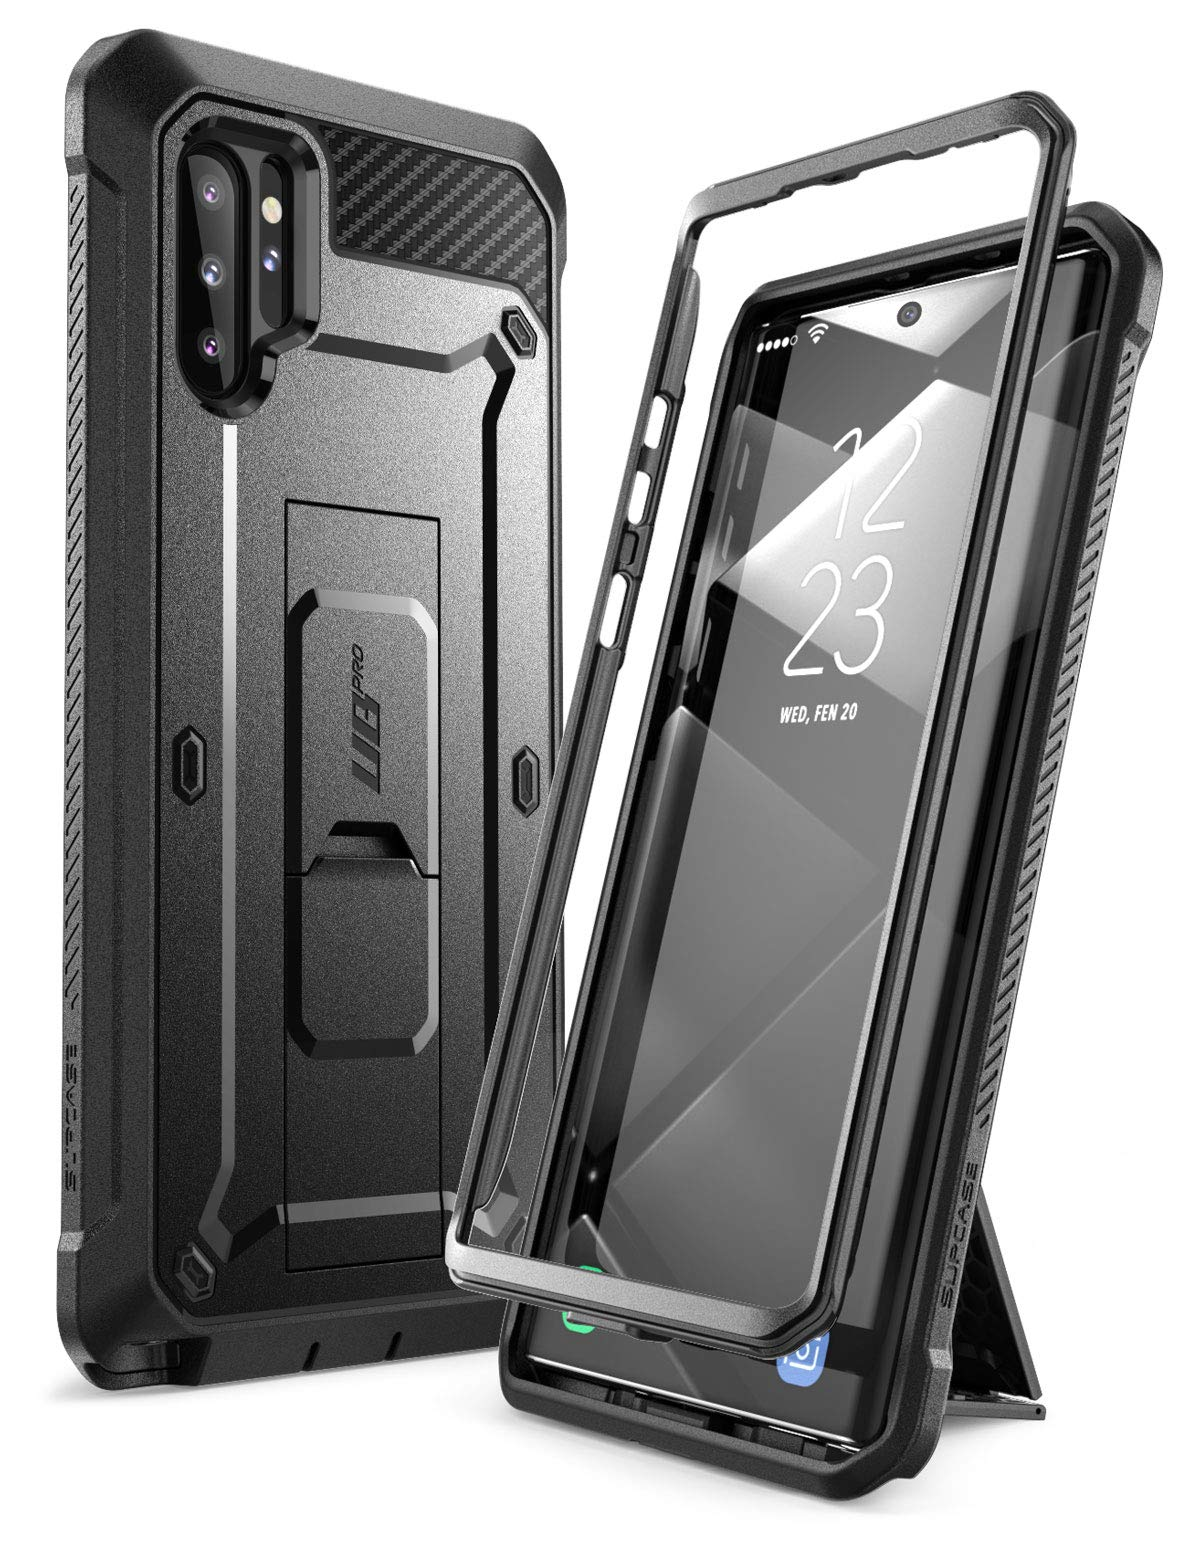 SUPCASE Unicorn Beetle Pro Series Case Designed for Samsung Galaxy Note 10 Plus/Note 10 Plus 5G, Full-Body Rugged Holster & Kickstand Without Built-in Screen Protector (Black) by SupCase